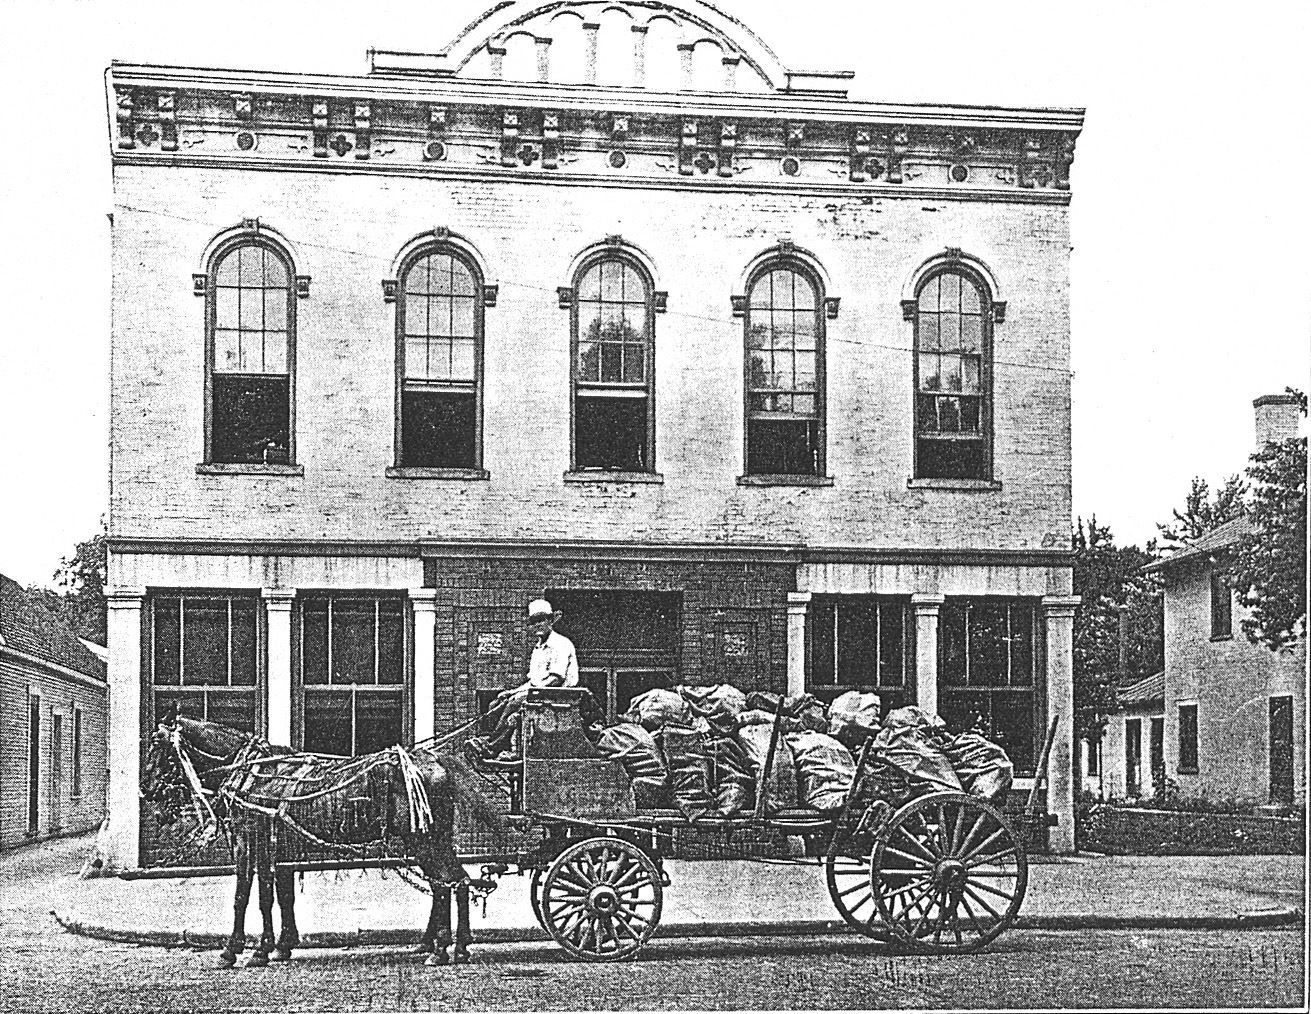 Eavey and Company Building on East Main Street